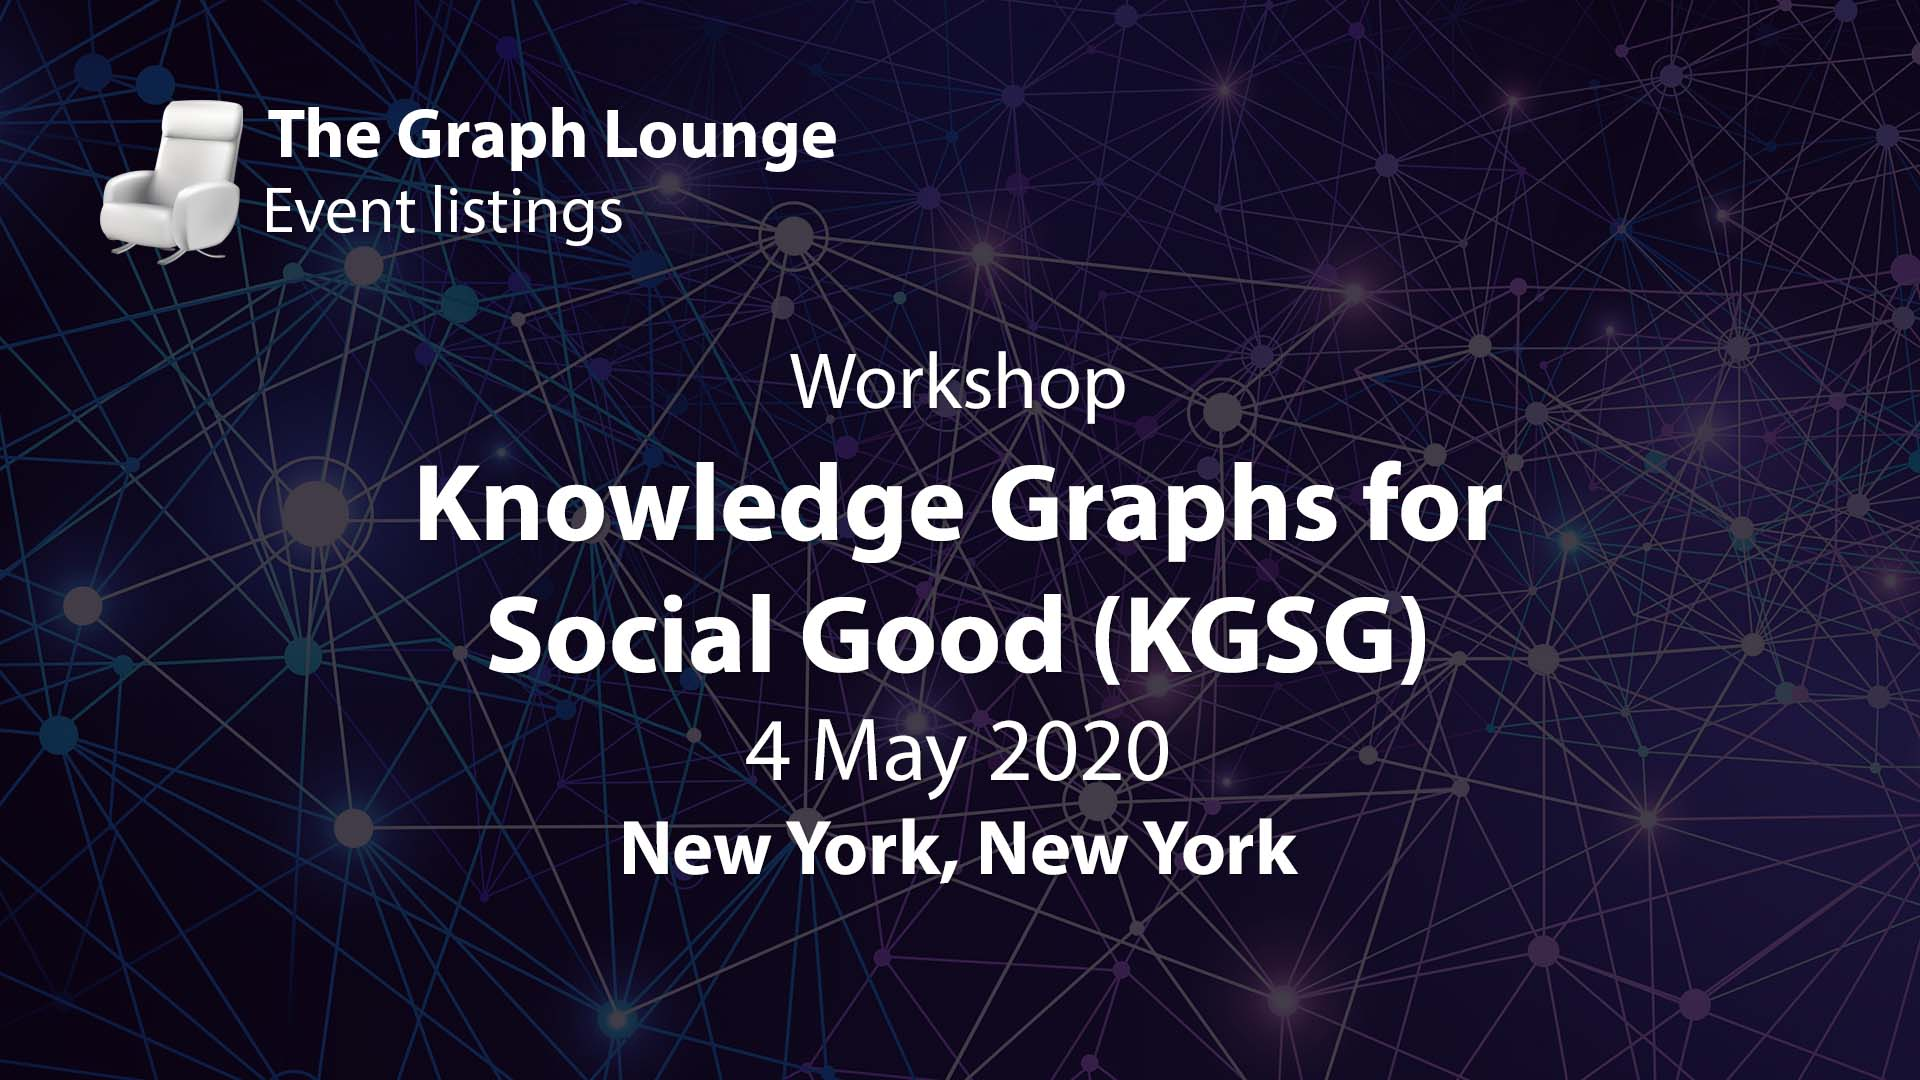 Knowledge Graphs for Social Good (KGSG)